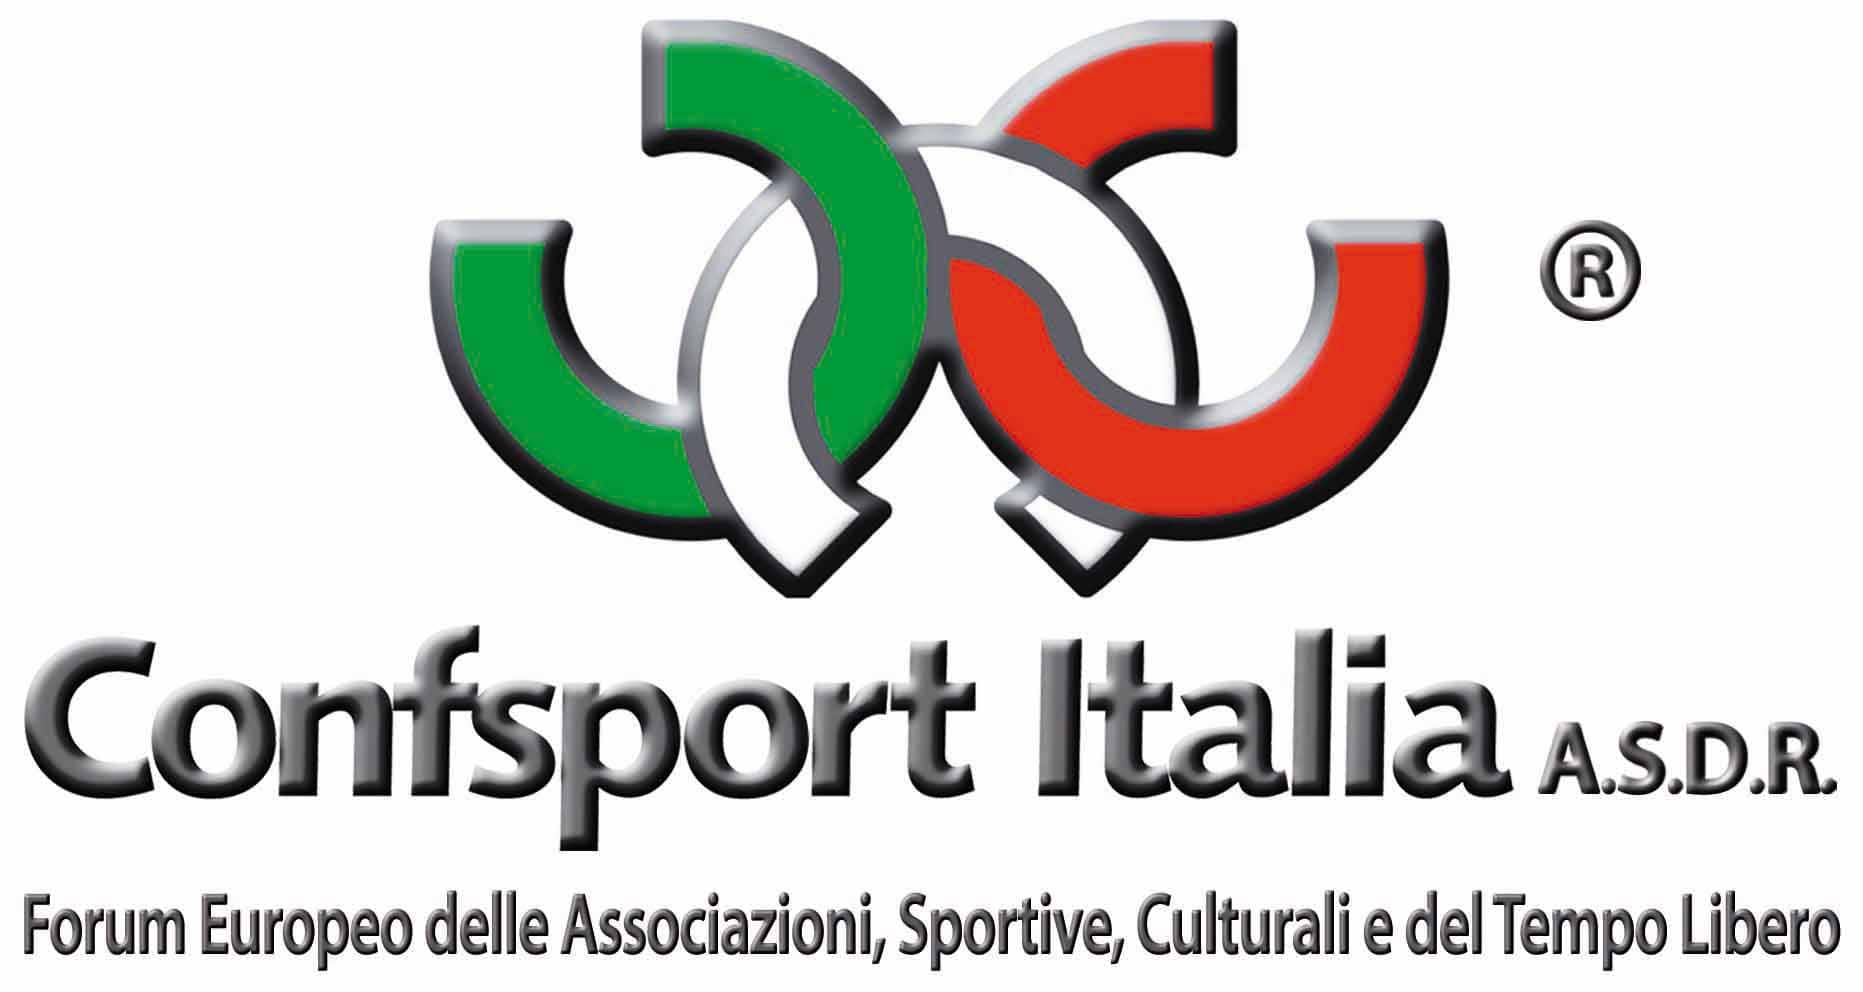 https://rarinantesalbano.it/wp-content/uploads/2019/11/Confsport-Italia.jpg